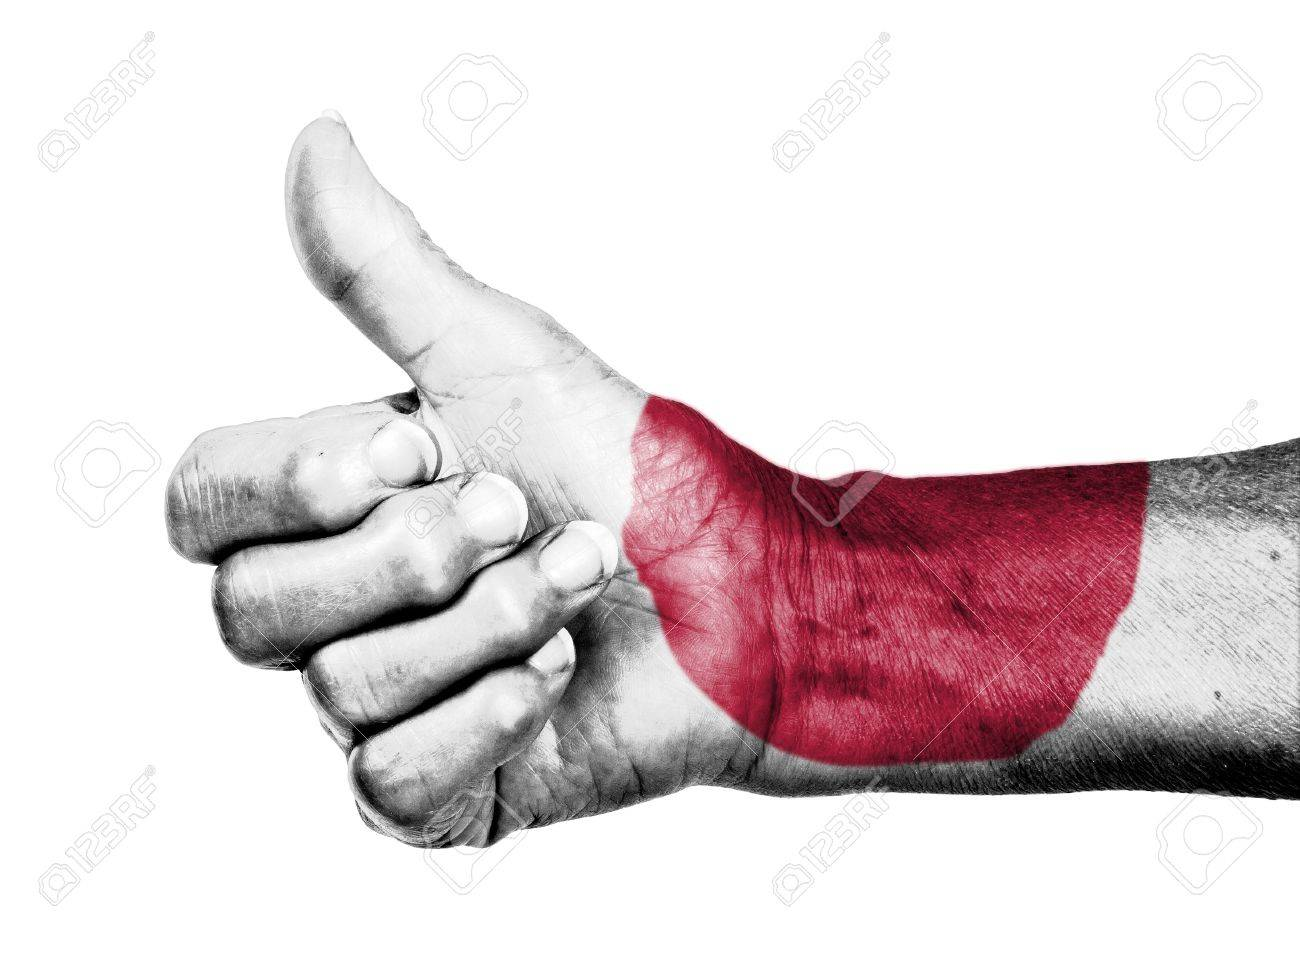 Old woman with arthritis giving the thumbs up sign, wrapped in flag pattern, Japan Stock Photo - 17520108